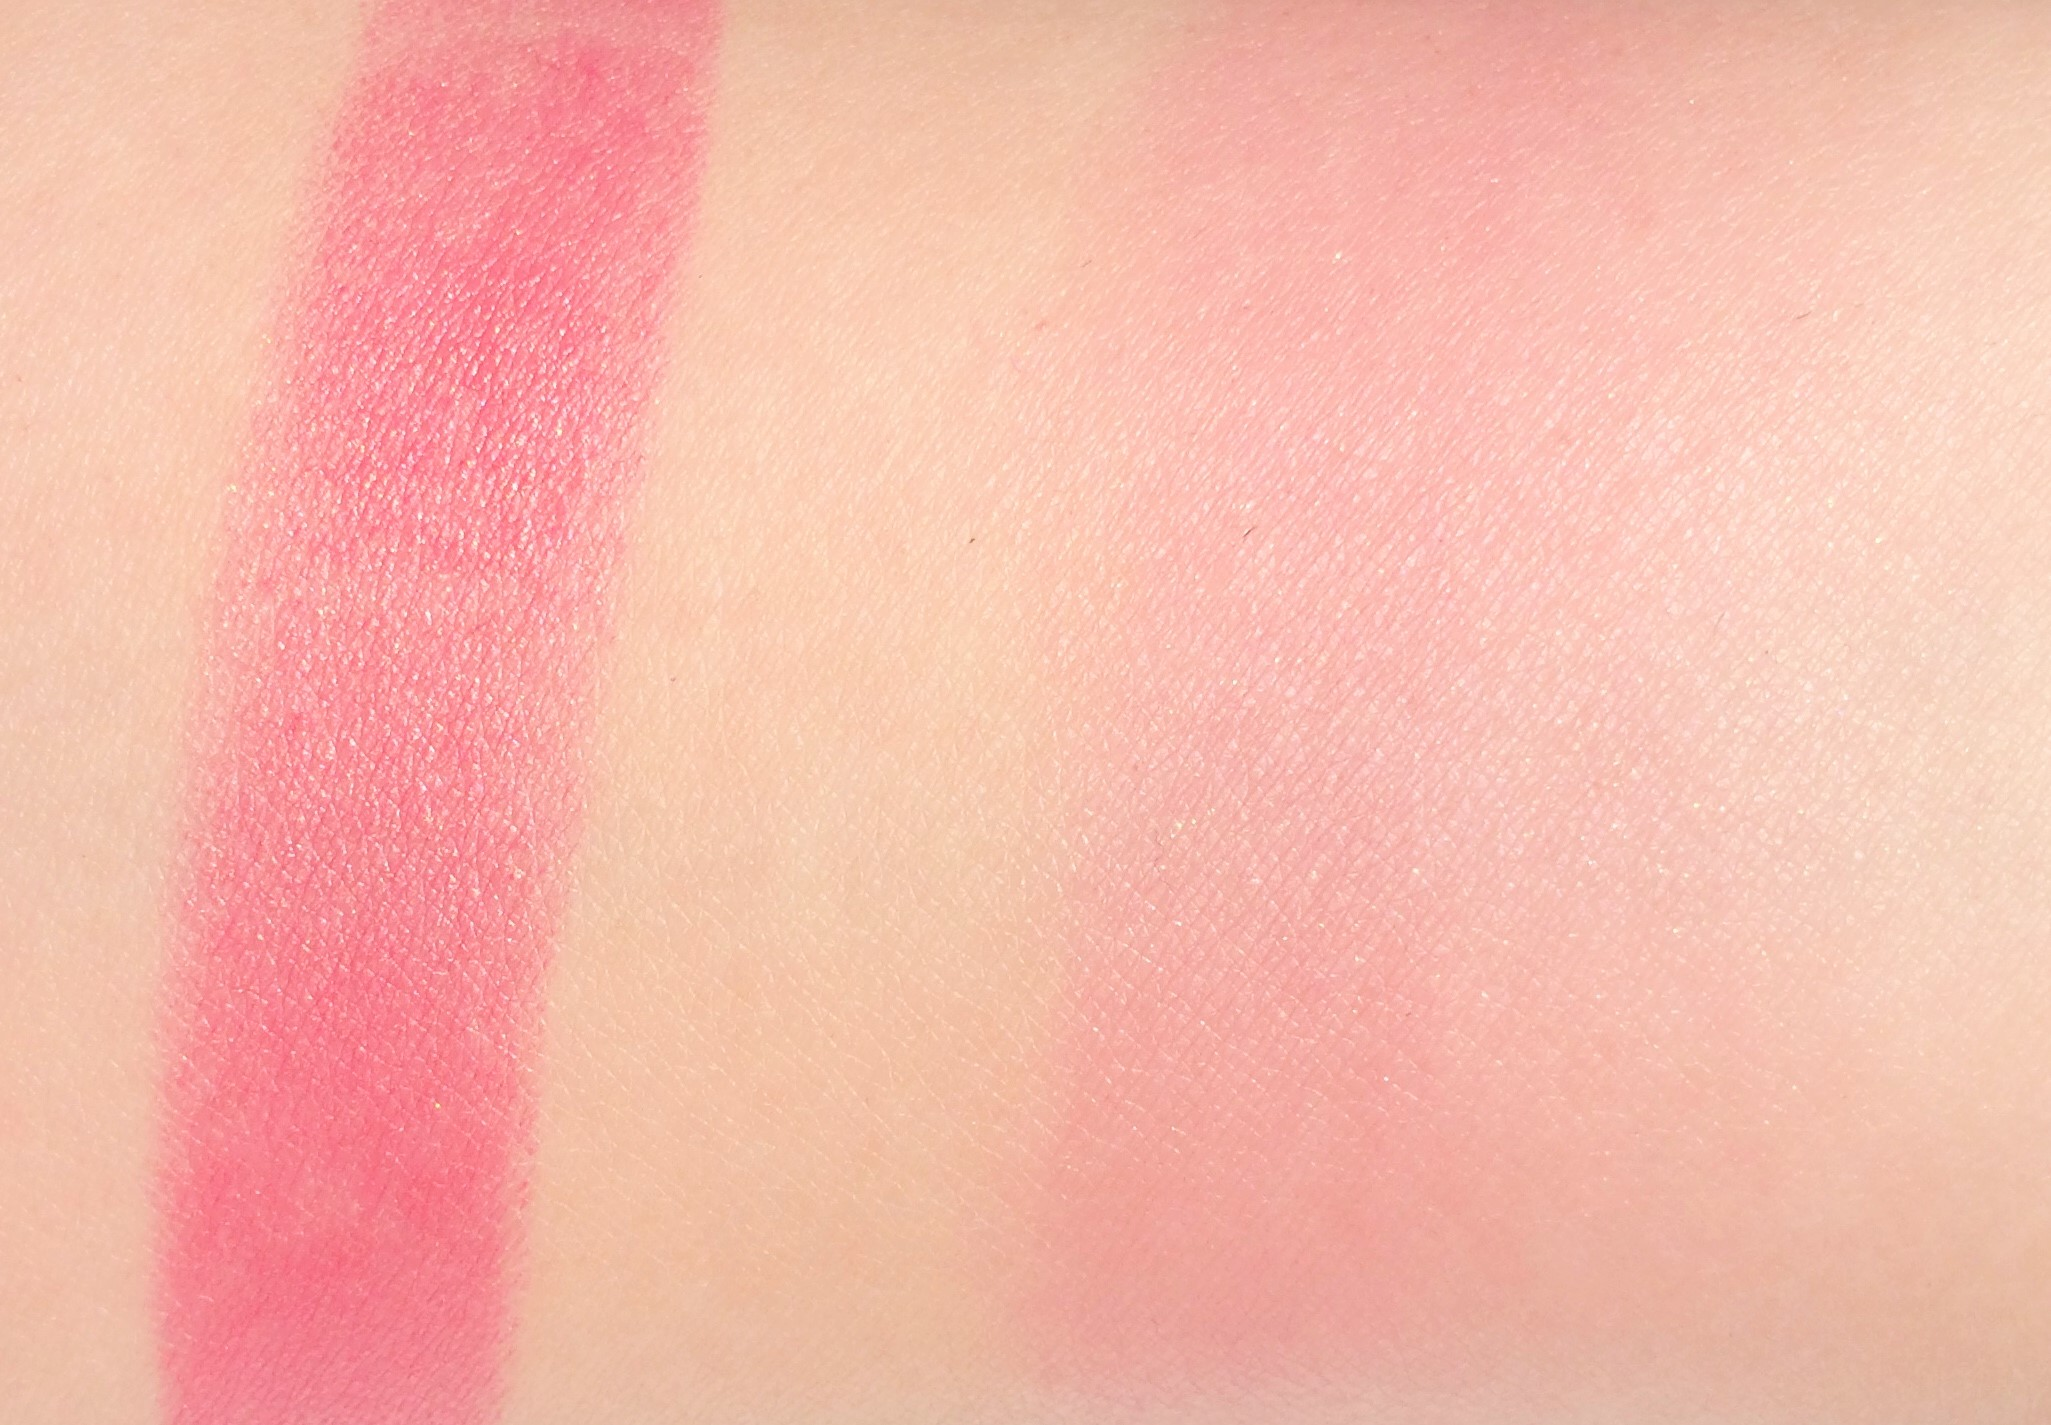 NYX Rose Petal Pop Bright Idea Illuminating Stick Review (6)